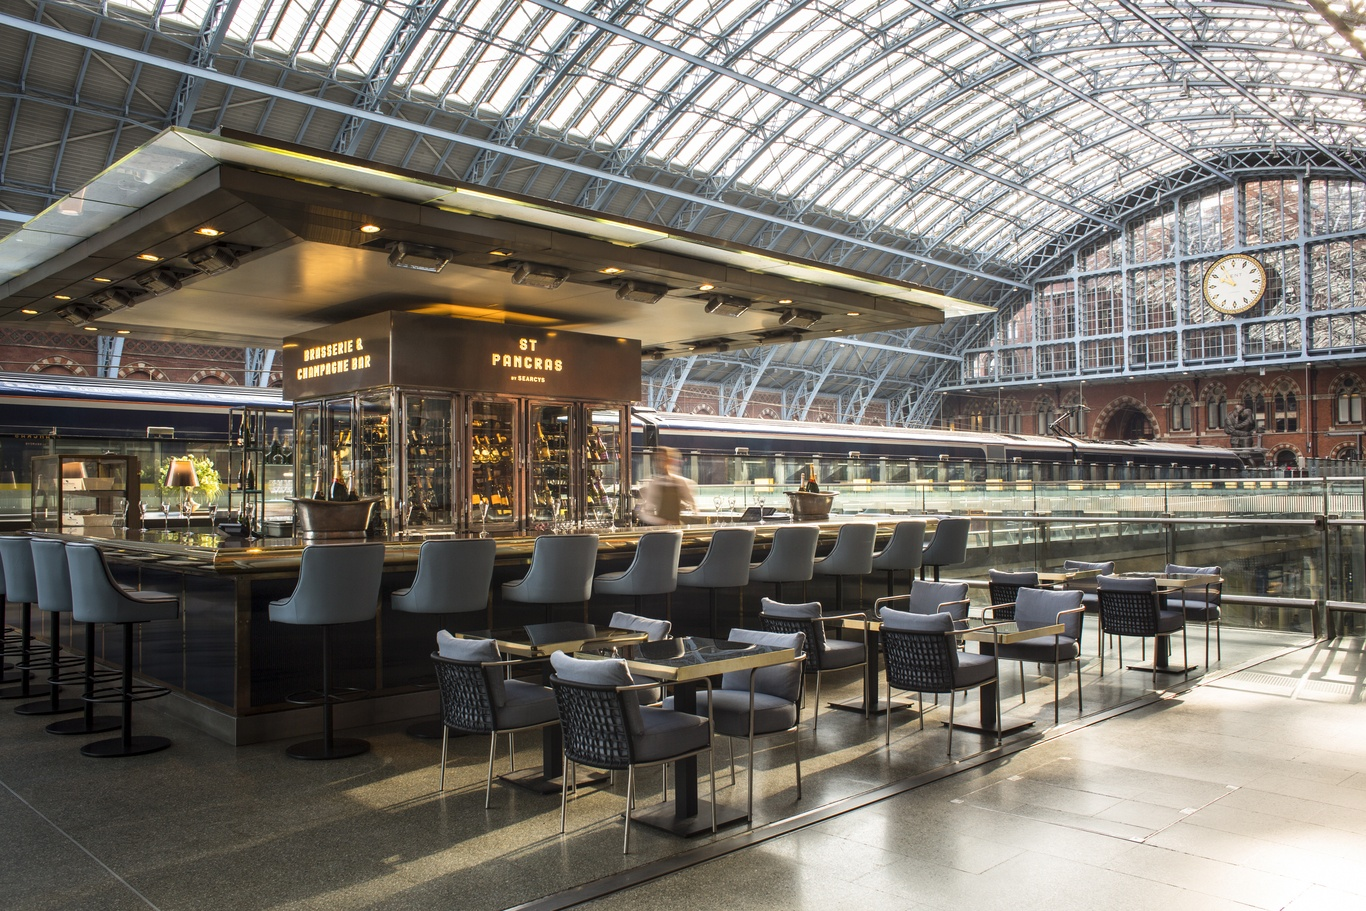 The champagne bar at Searcys bar in St Pancras. We drink a Tiffany & Co cocktail there